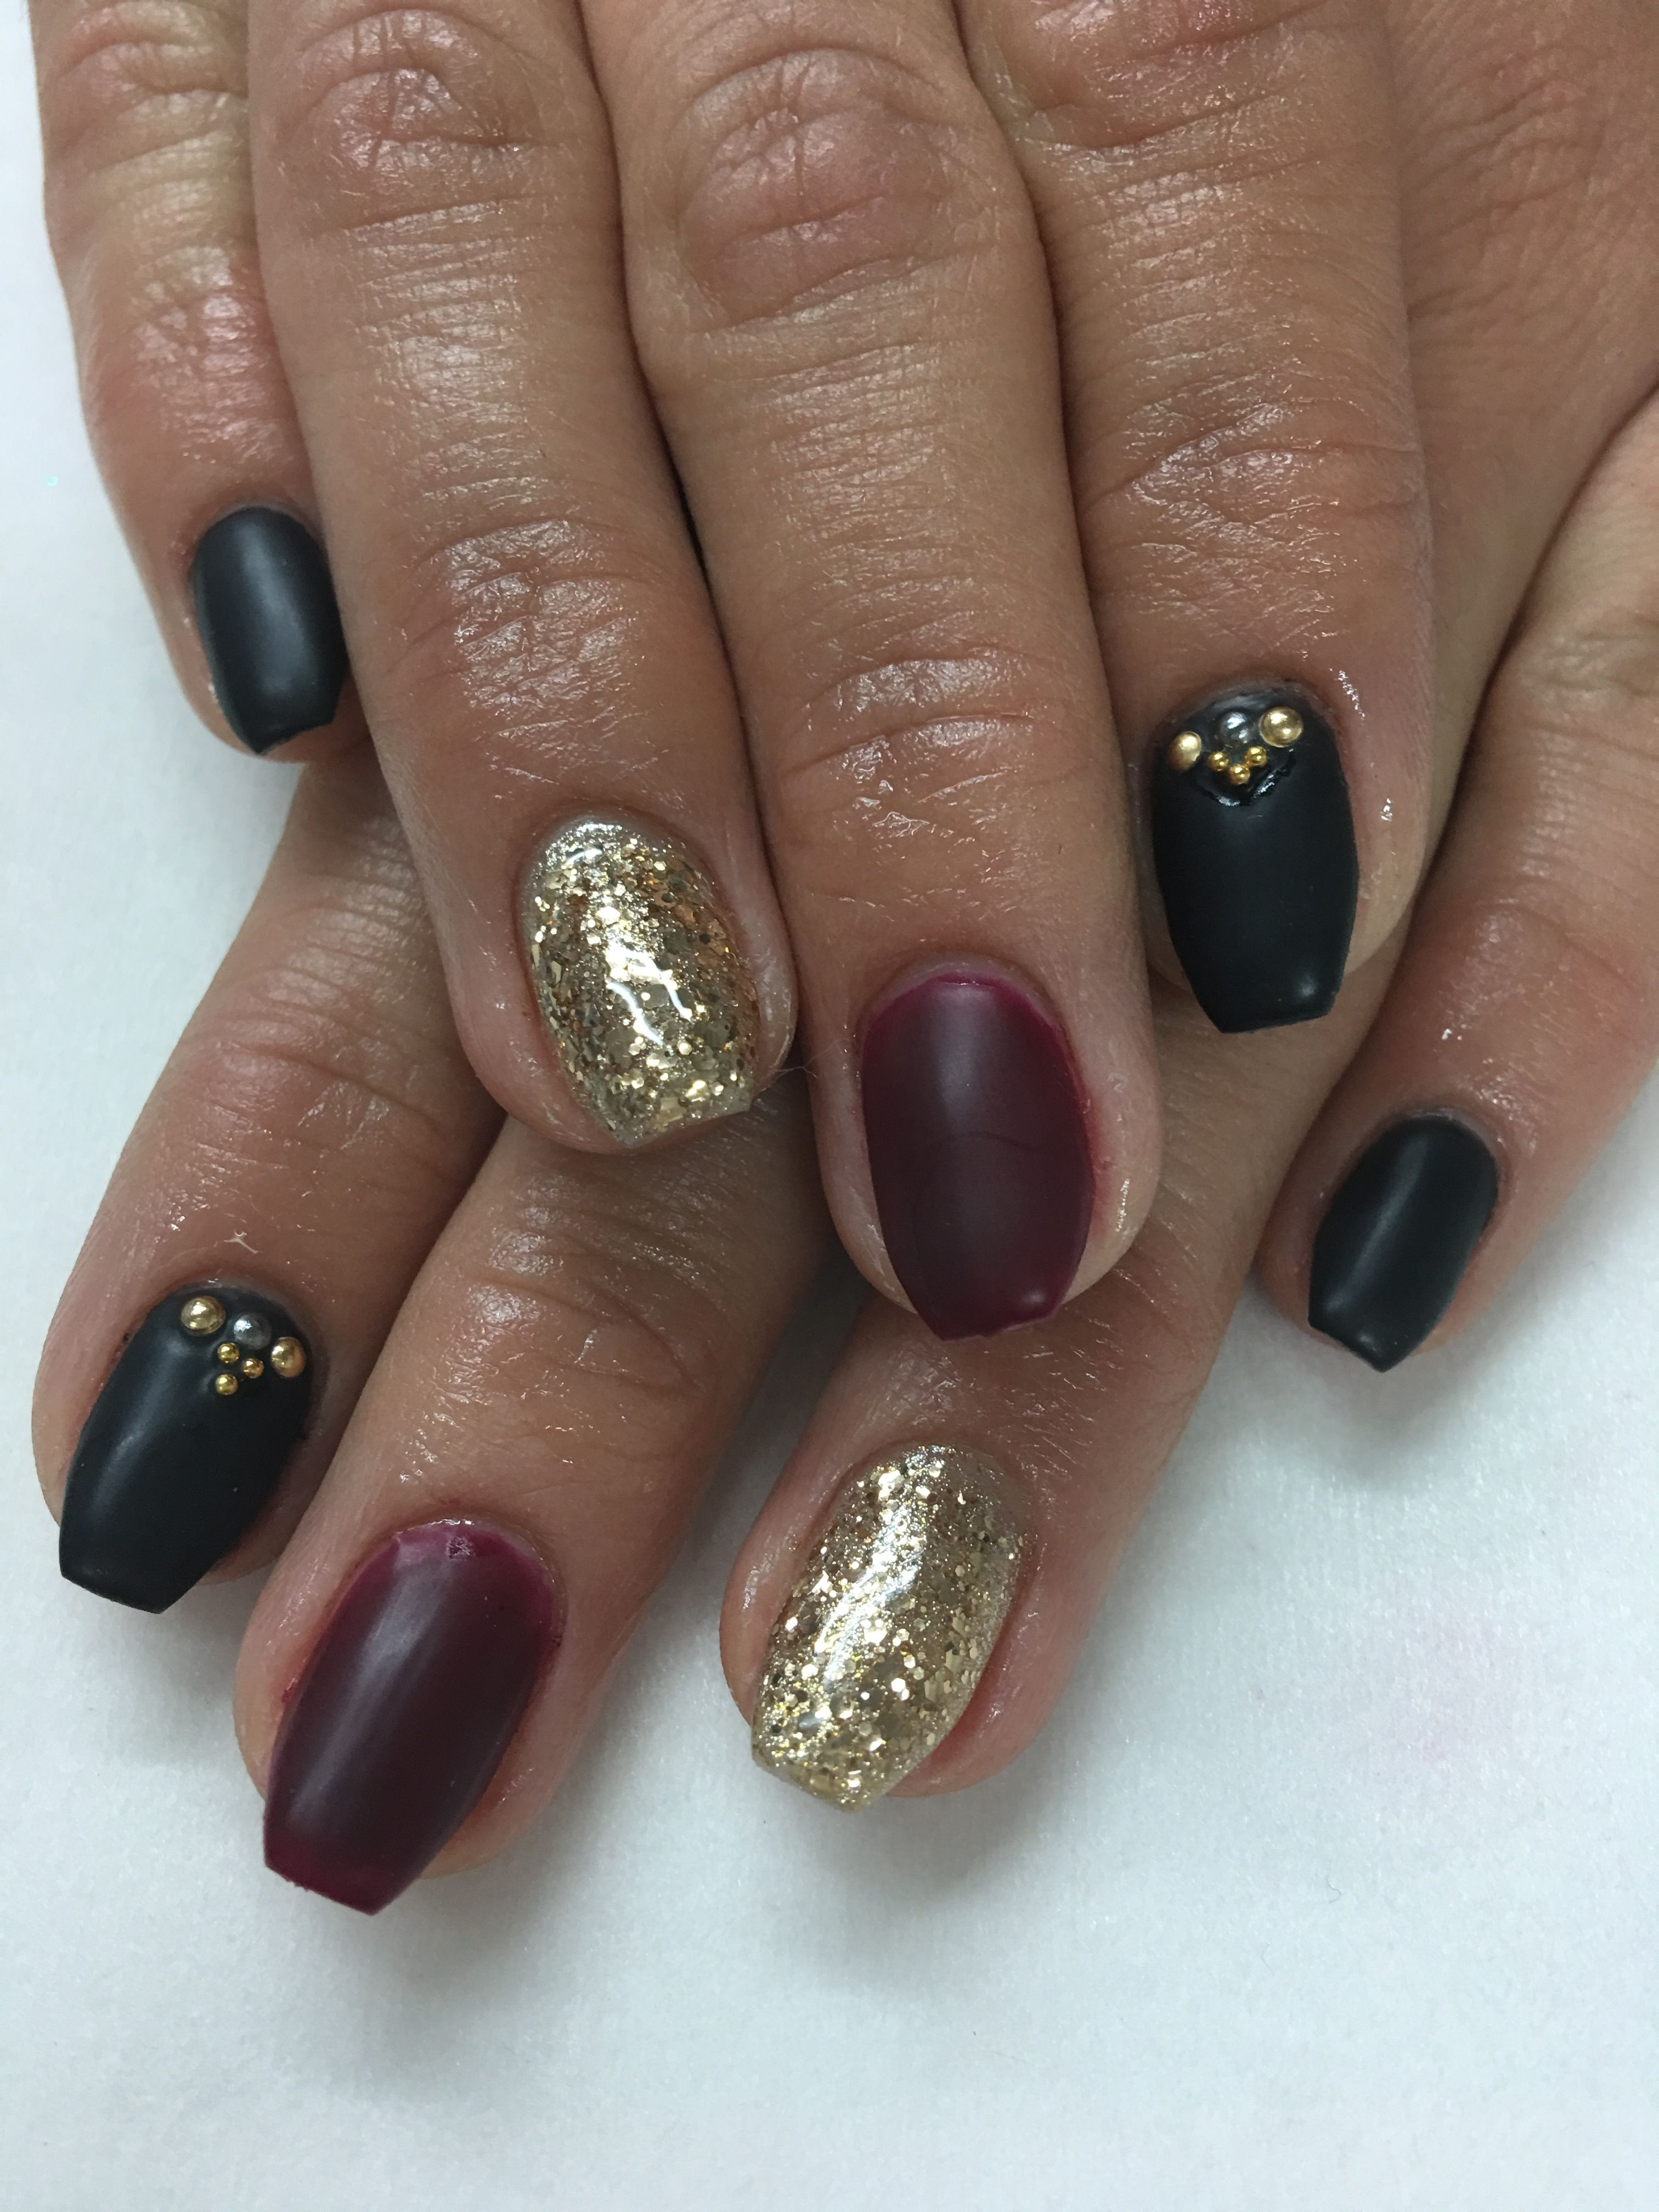 Contemporary Black Gel Nails With Gold Glitter Ensign - Nail Art ...